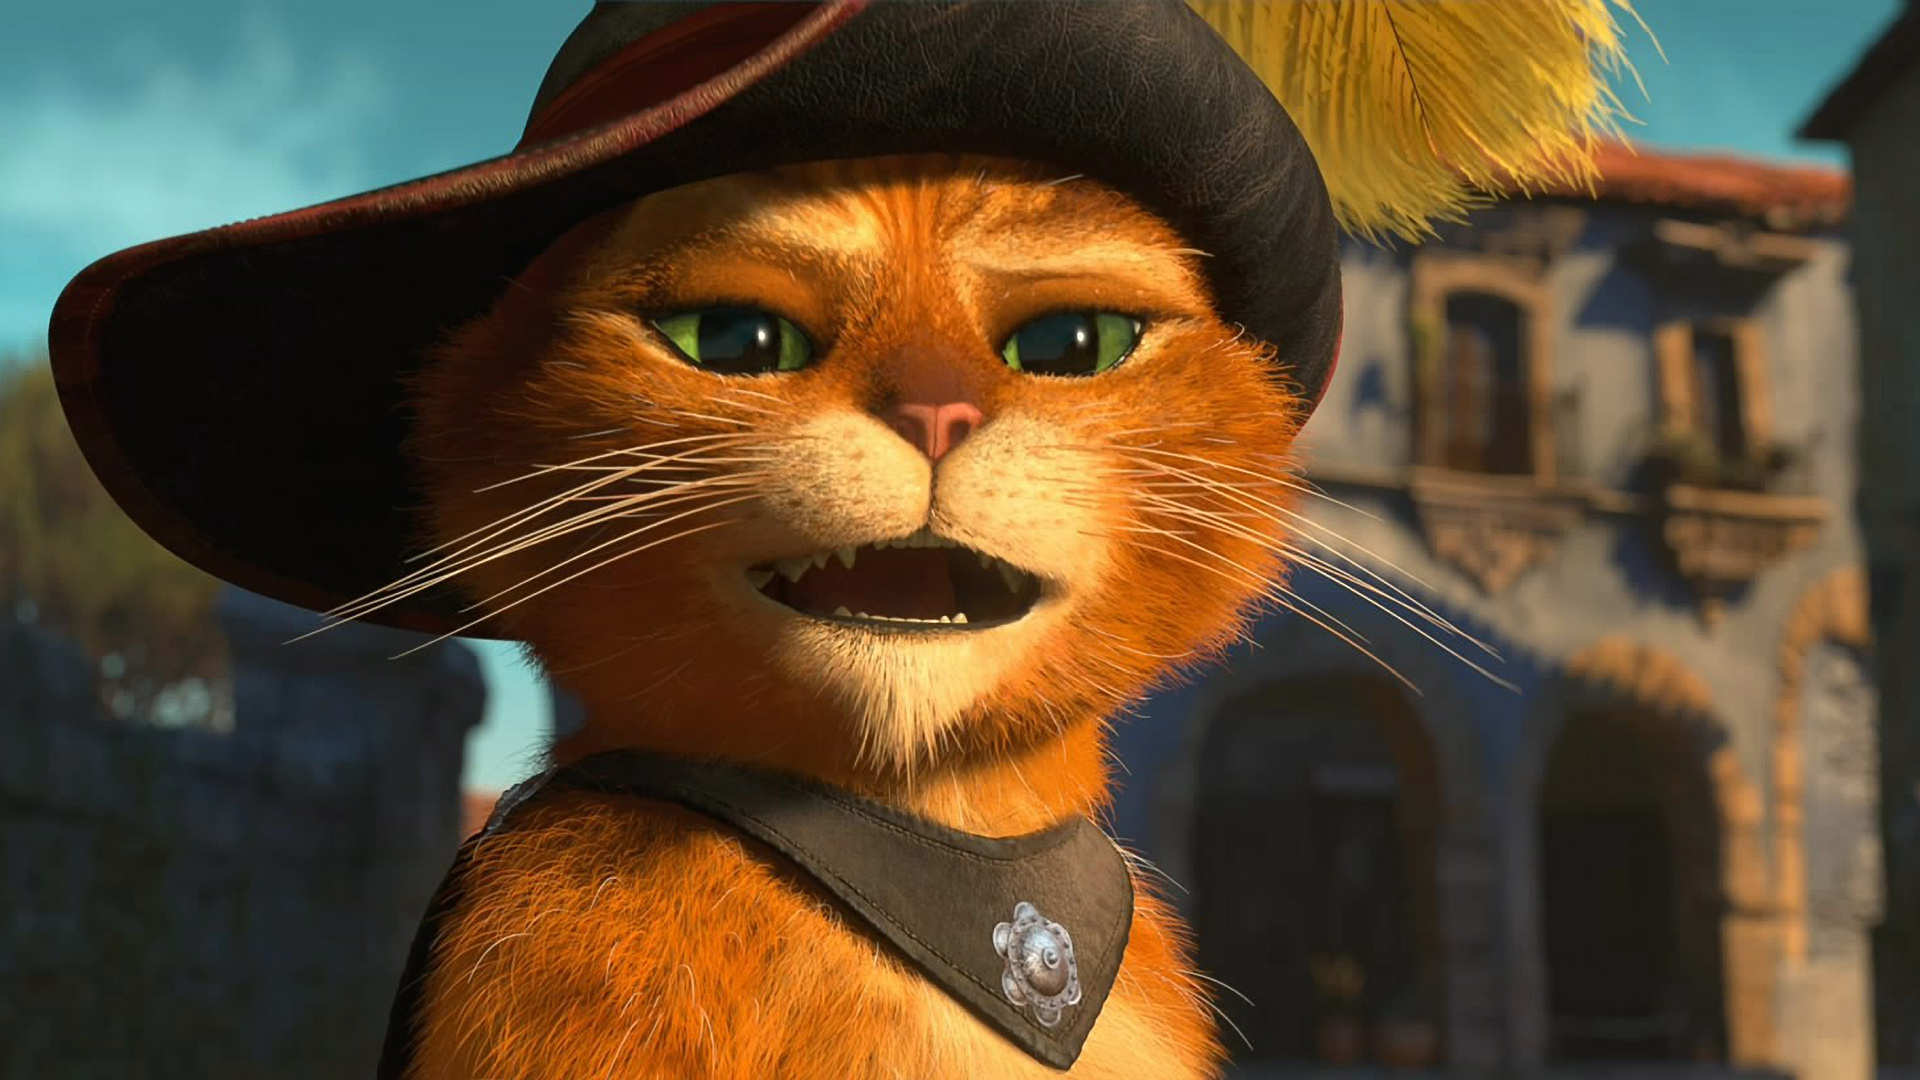 Puss In Boots Wallpaper Hd Puss In Boots Voiced By Antonio Banderas Full Hd Wallpaper